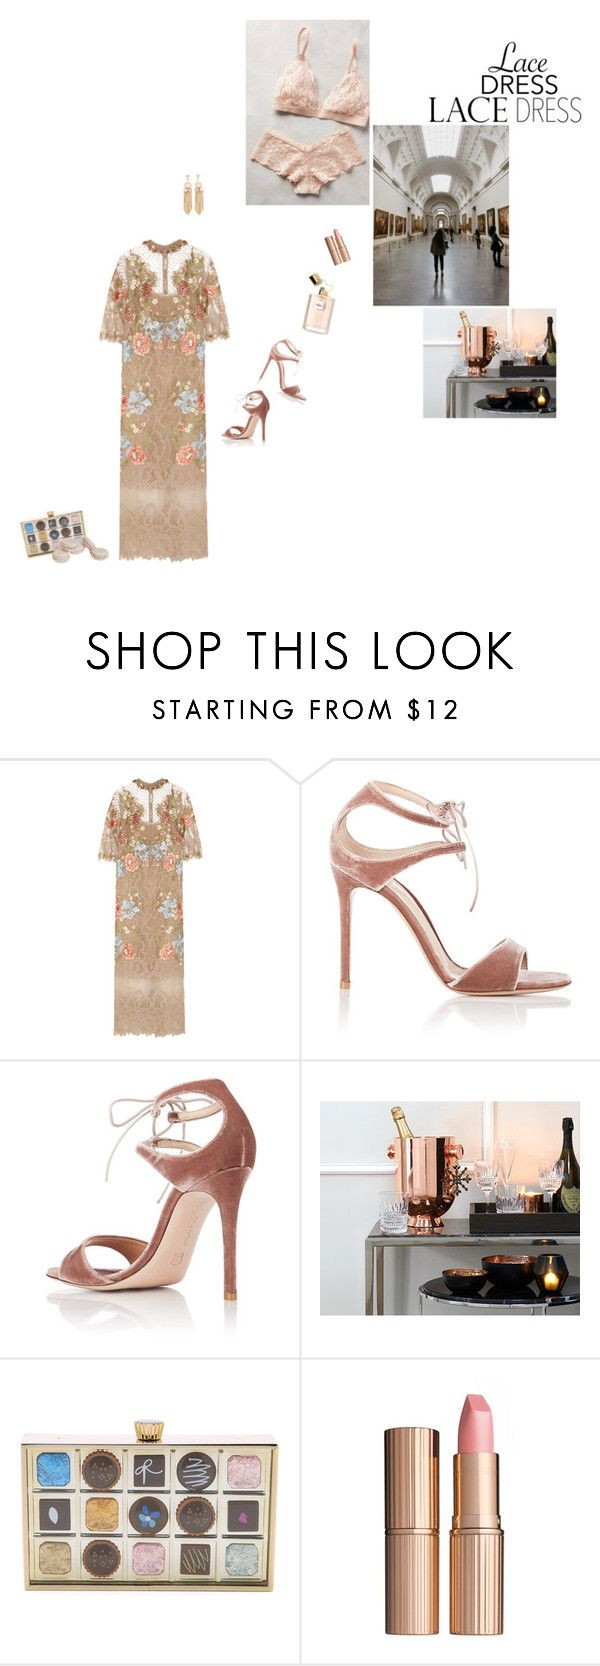 """""""Untitled #5"""" by ladylaurae ❤ liked on Polyvore featuring Biyan, Gianvito Rossi, Prada, Kate Spade and Charlotte Tilbury"""